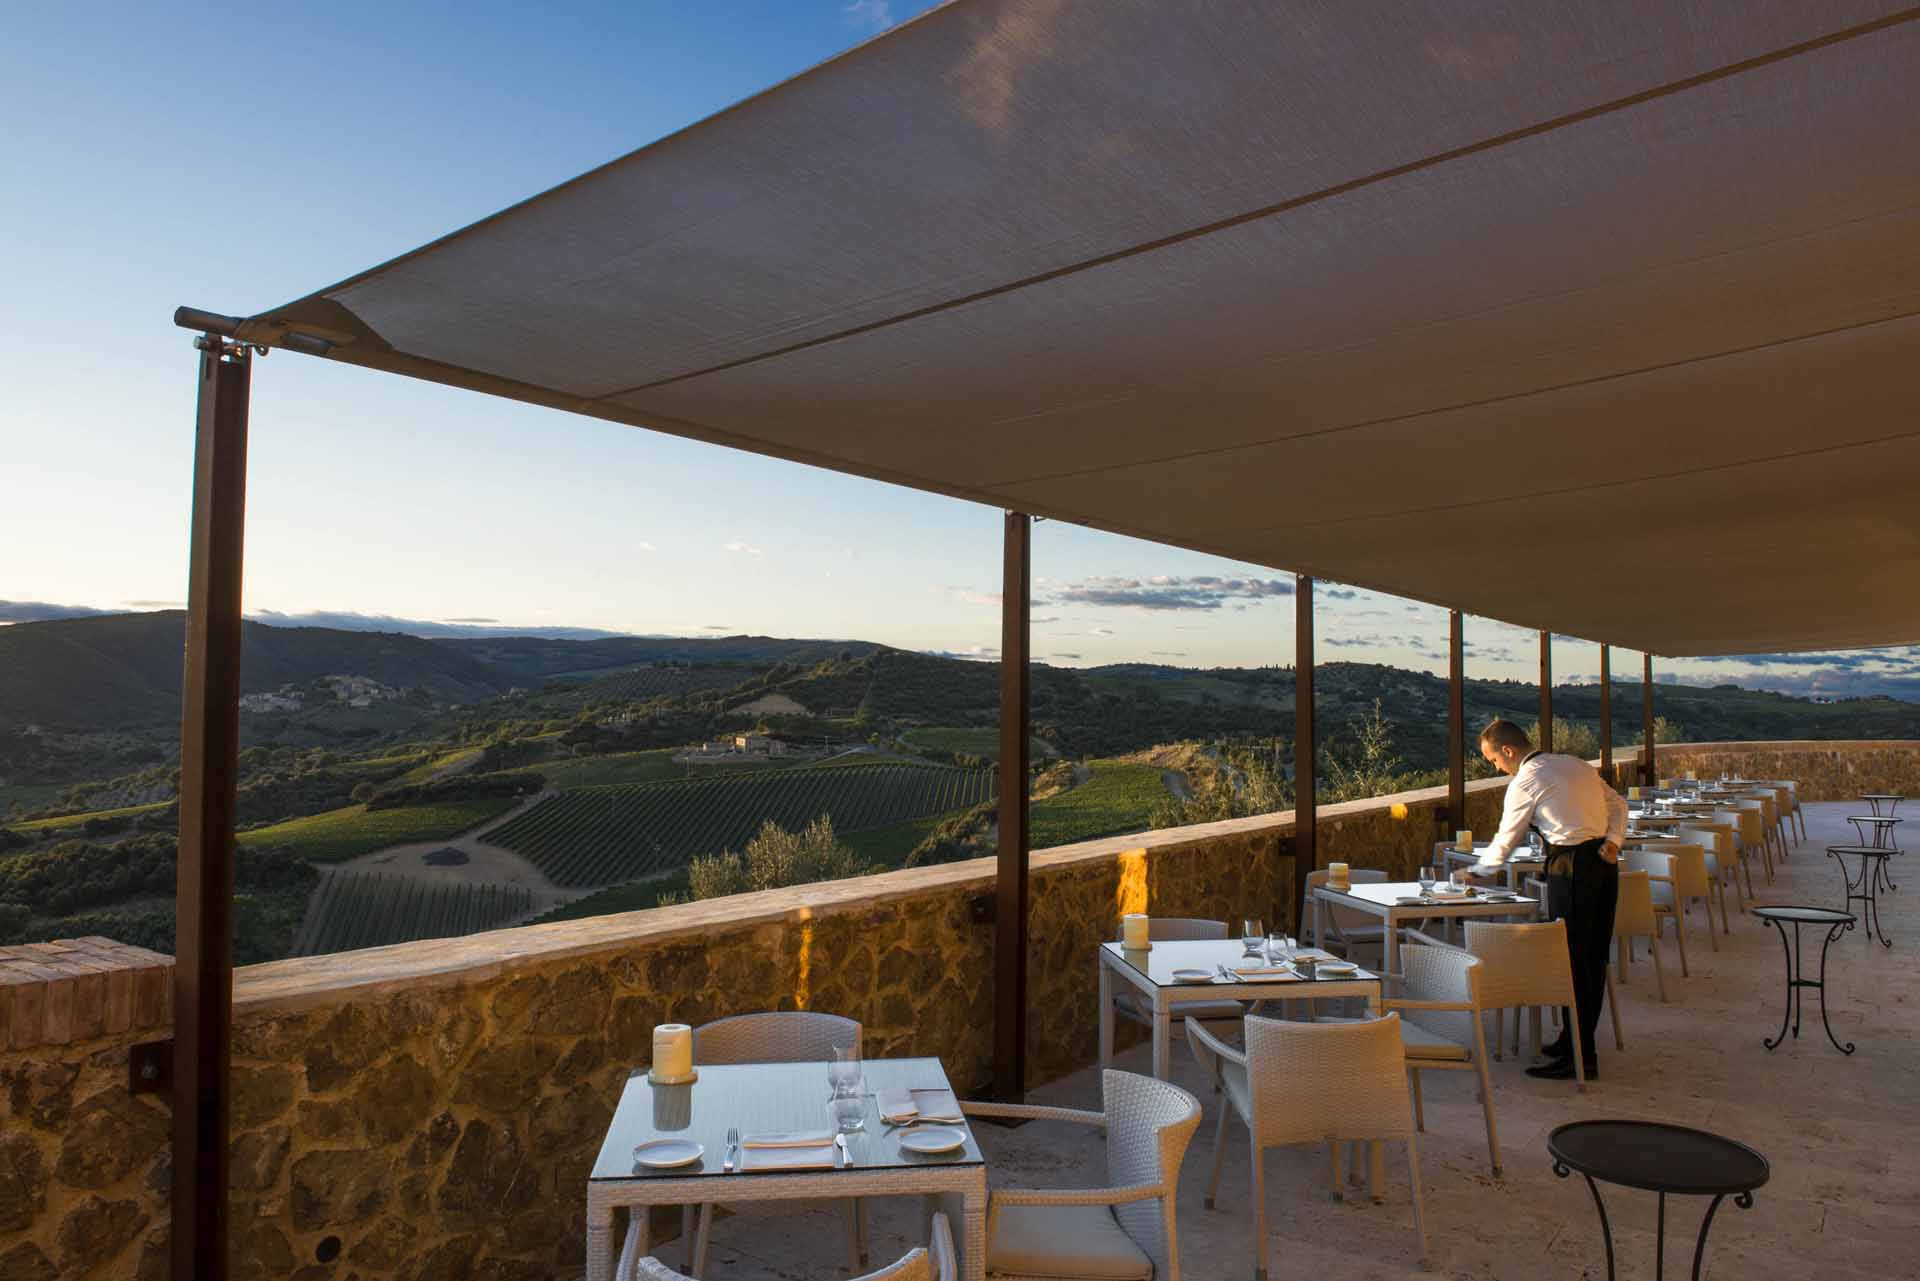 castello di velona resort, thermal spa & winery Montalcino 00008